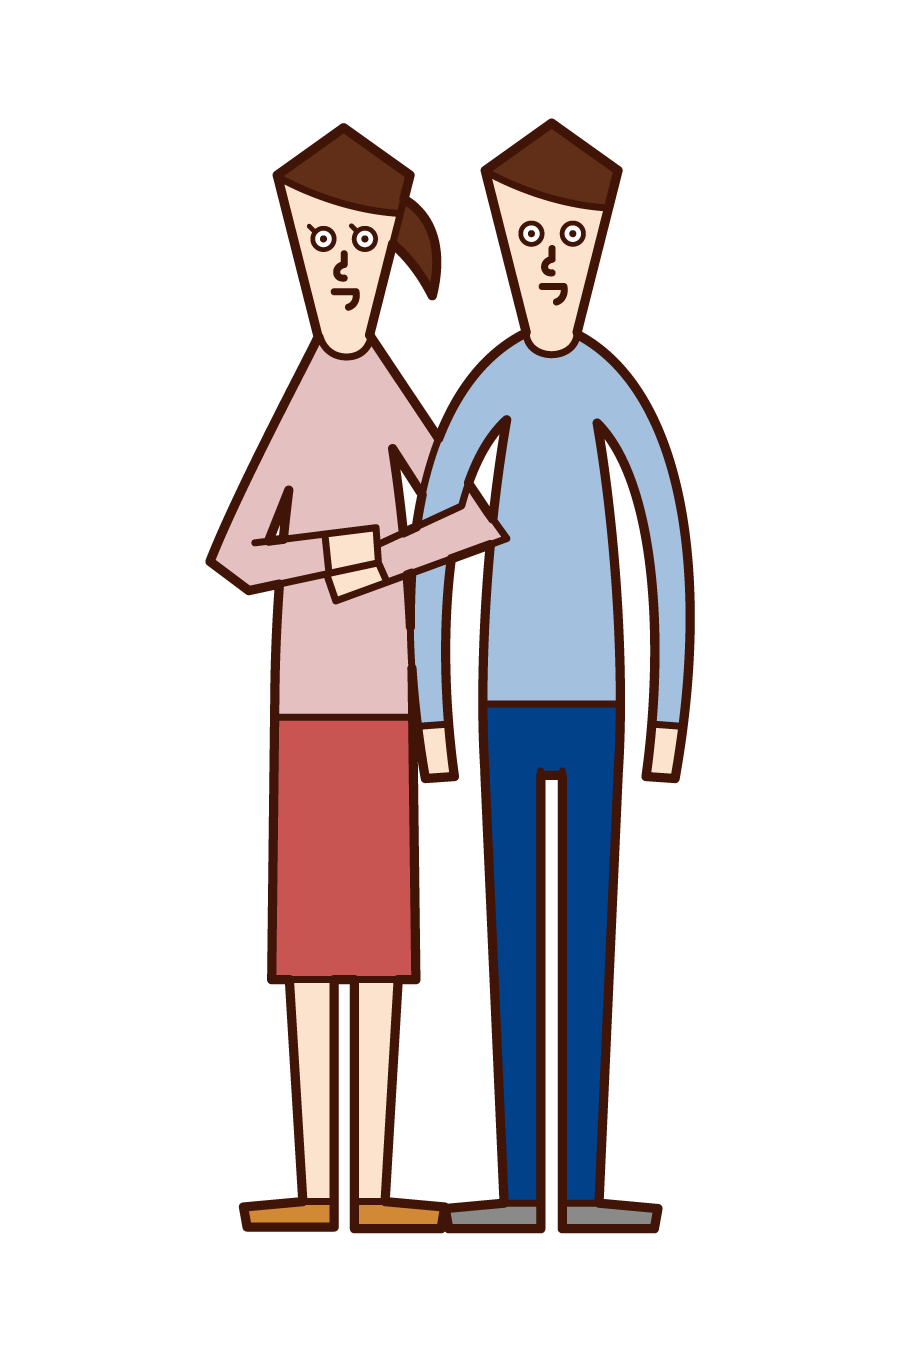 Illustration of a good couple